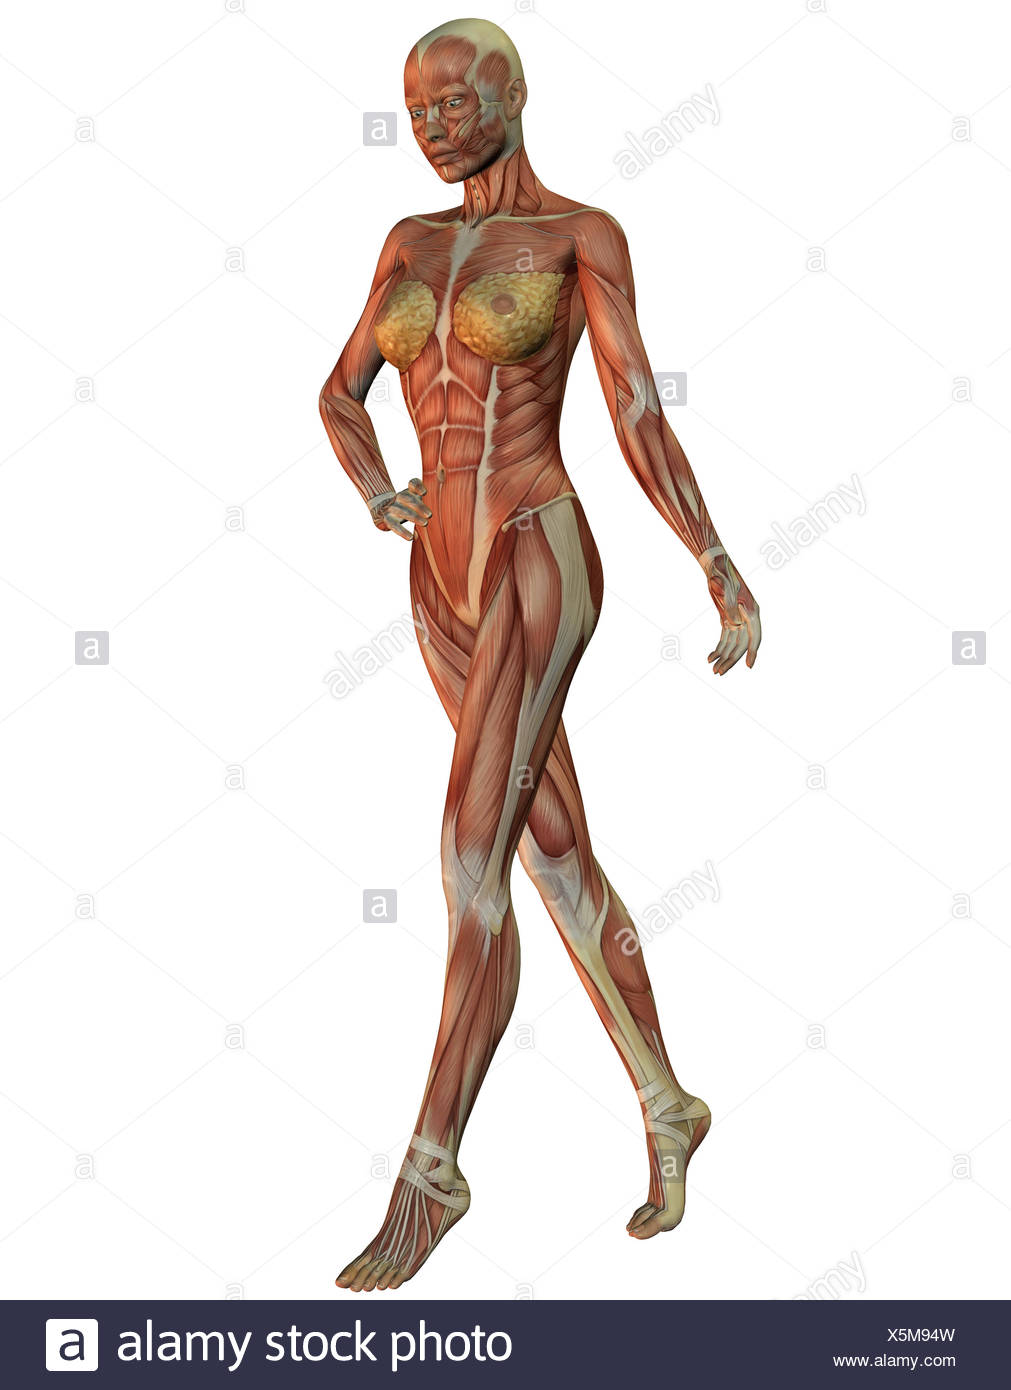 Chirurgie Stock Photos & Chirurgie Stock Images - Alamy